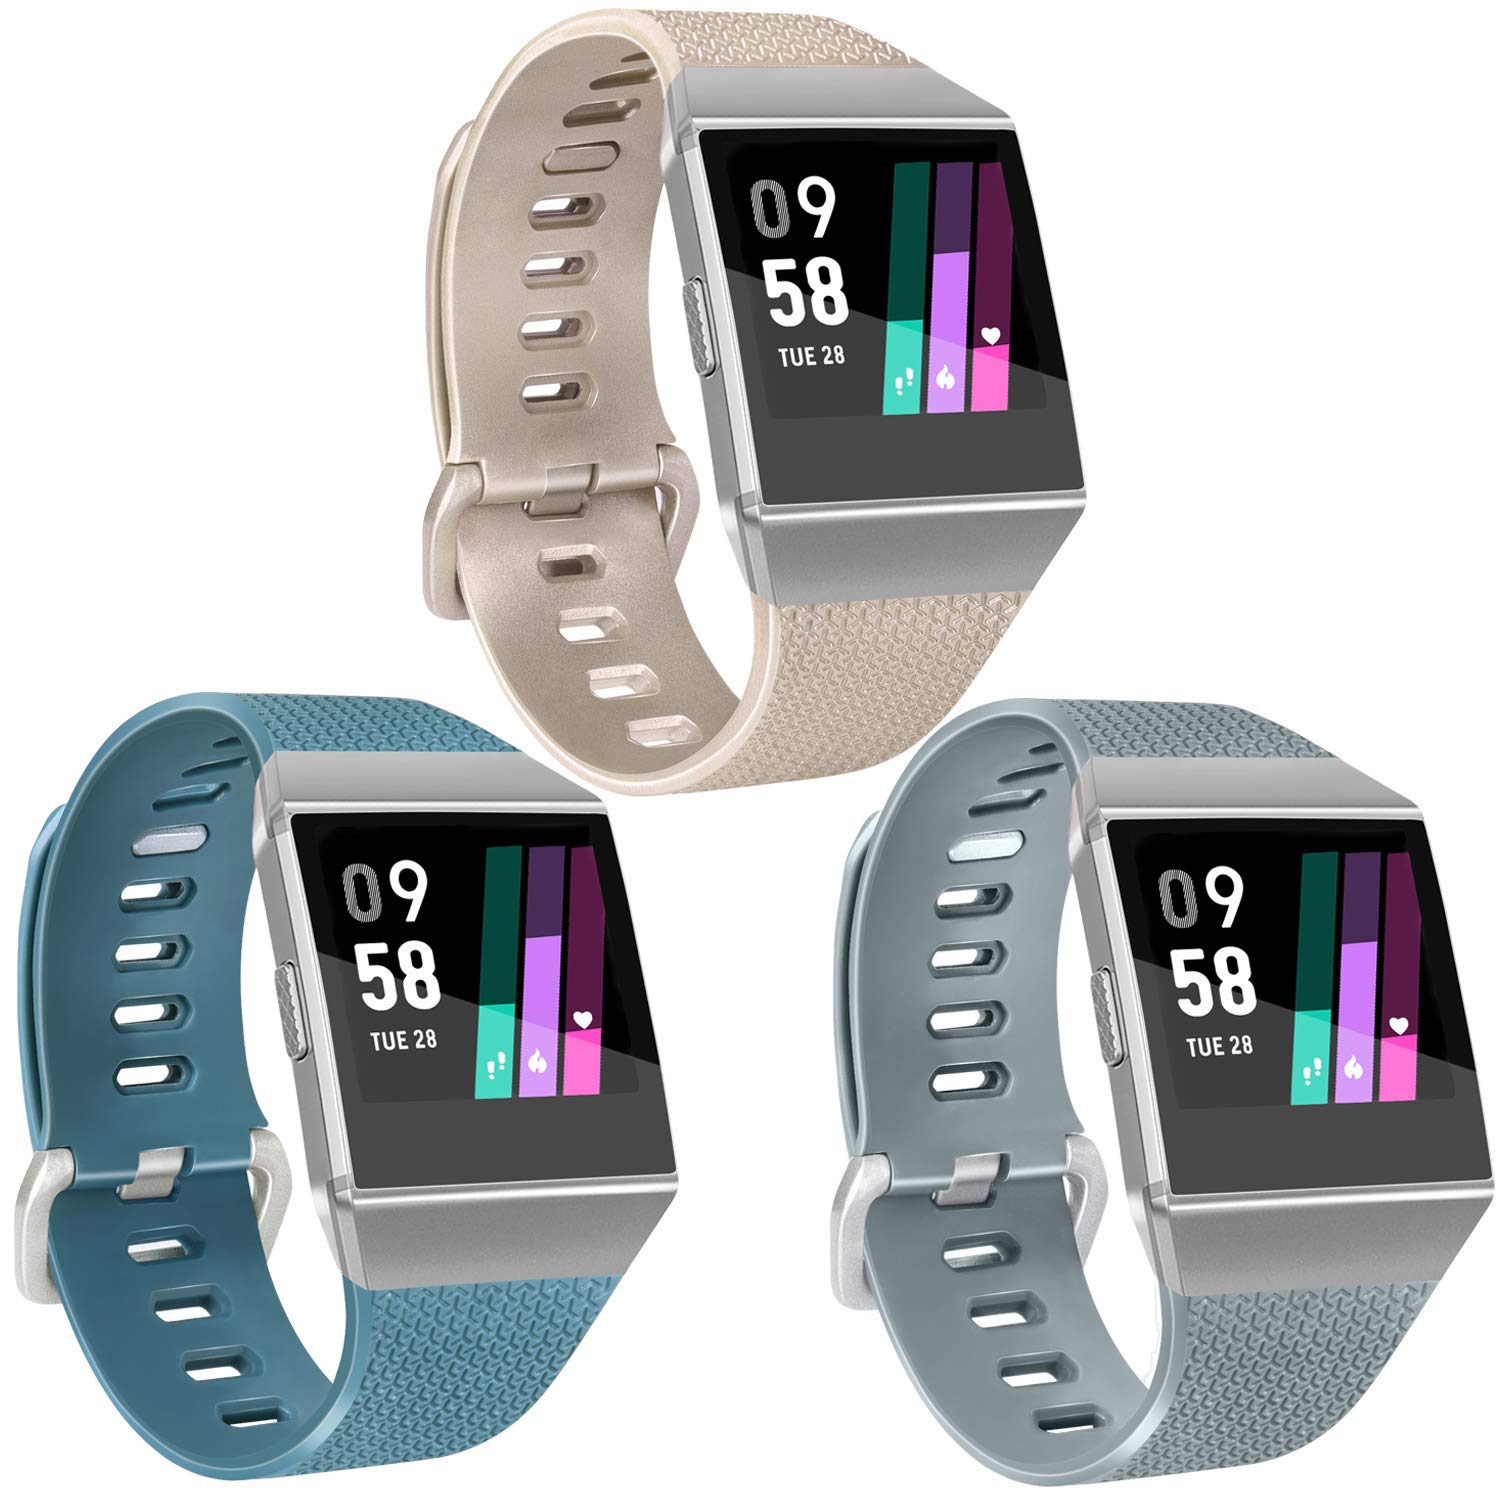 Vancle Sport Bands Compatible with Fitbit Ionic Bands for Women Men, Classic Wristbands Fitbit Ionic Accessories Straps for Fitbit Ionic Smart Watch, ...